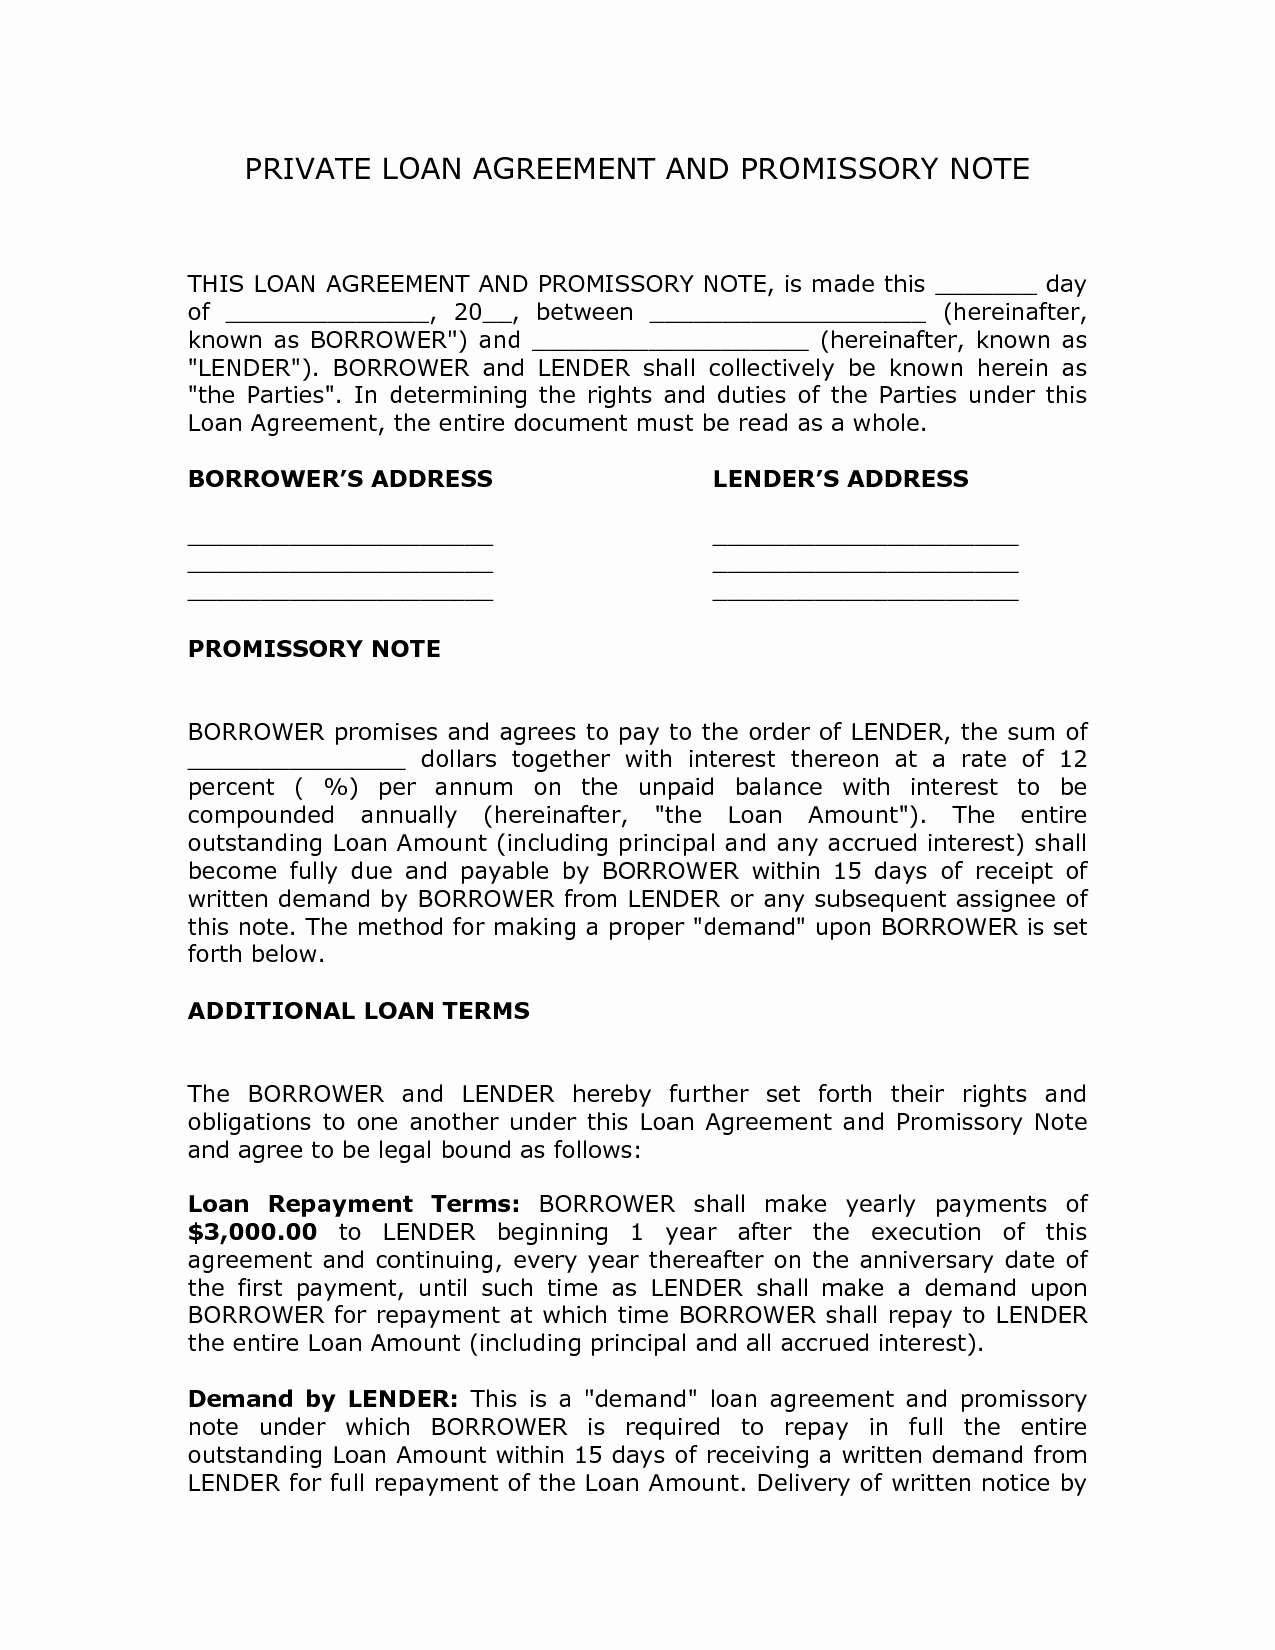 Private Loan Contract Template New Corporate Loan Contract Sample Private Loan Agreement